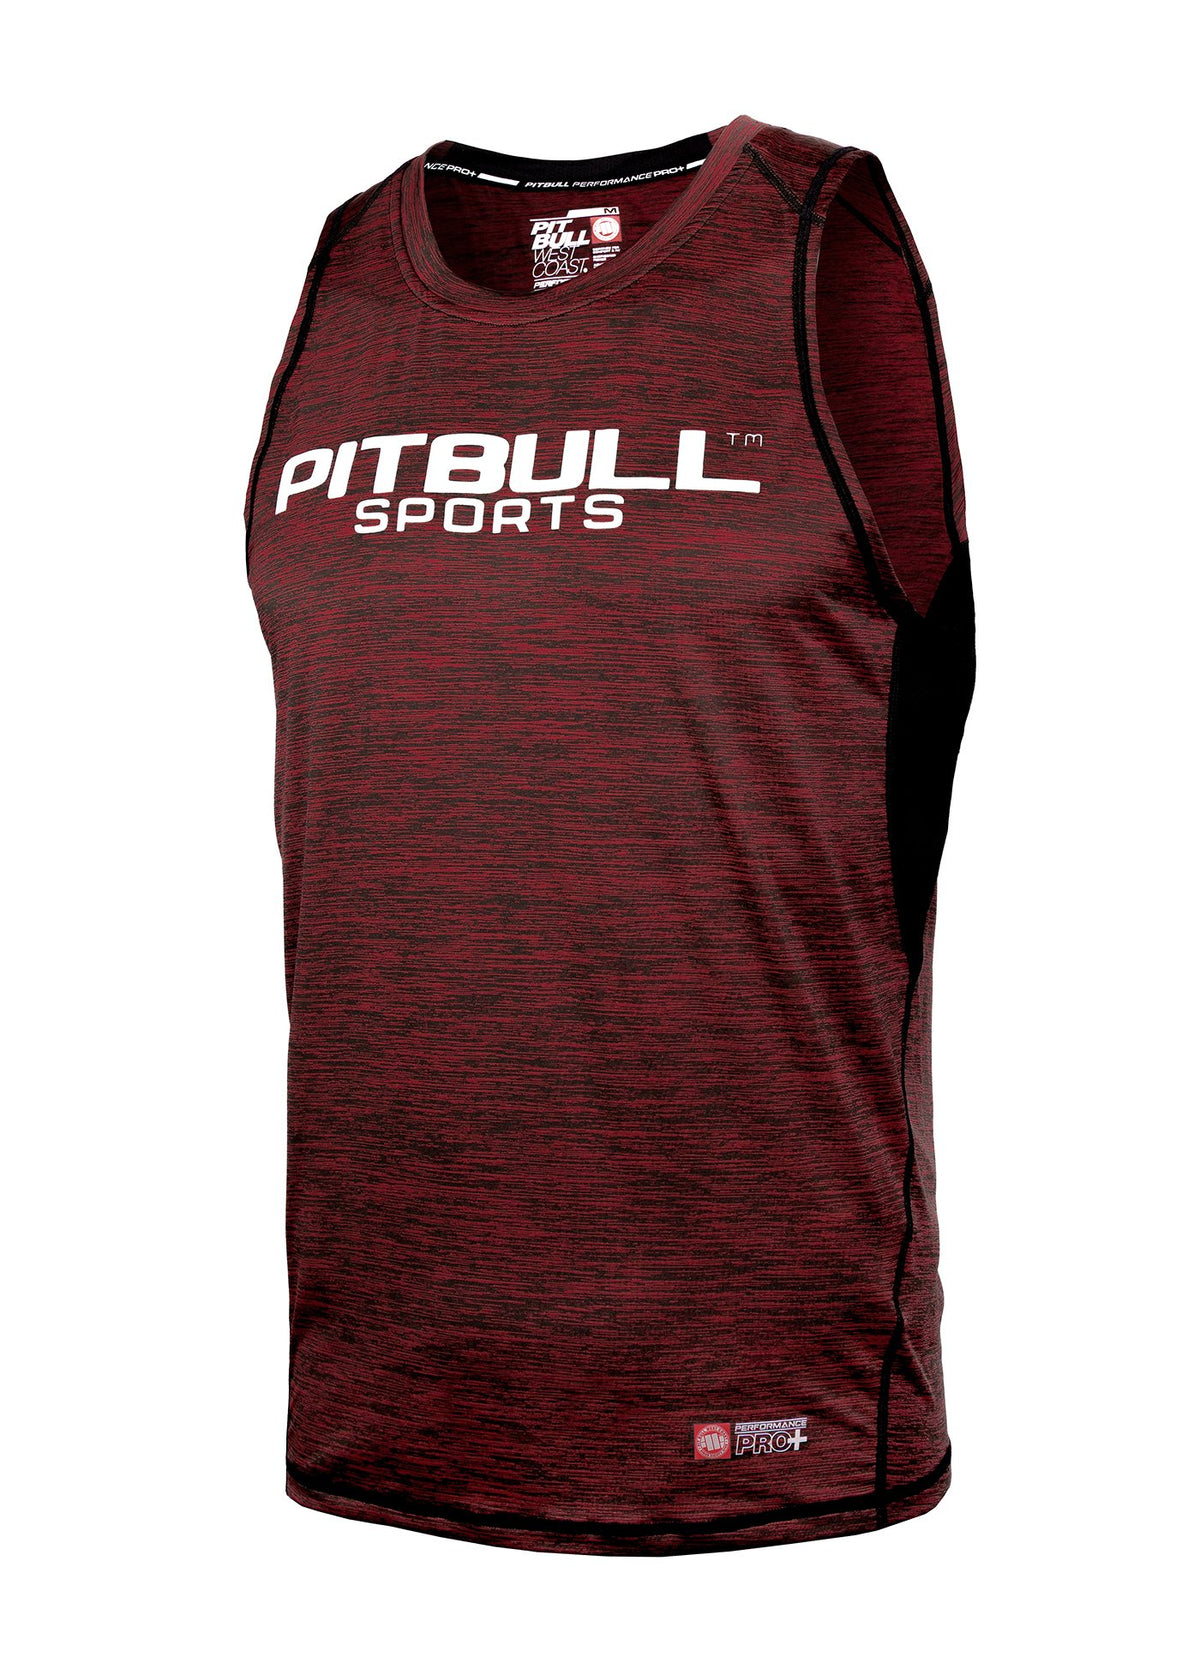 TANK TOP COMPRESSION PRO PLUS MLG Burgundy - Pitbull West Coast U.S.A.